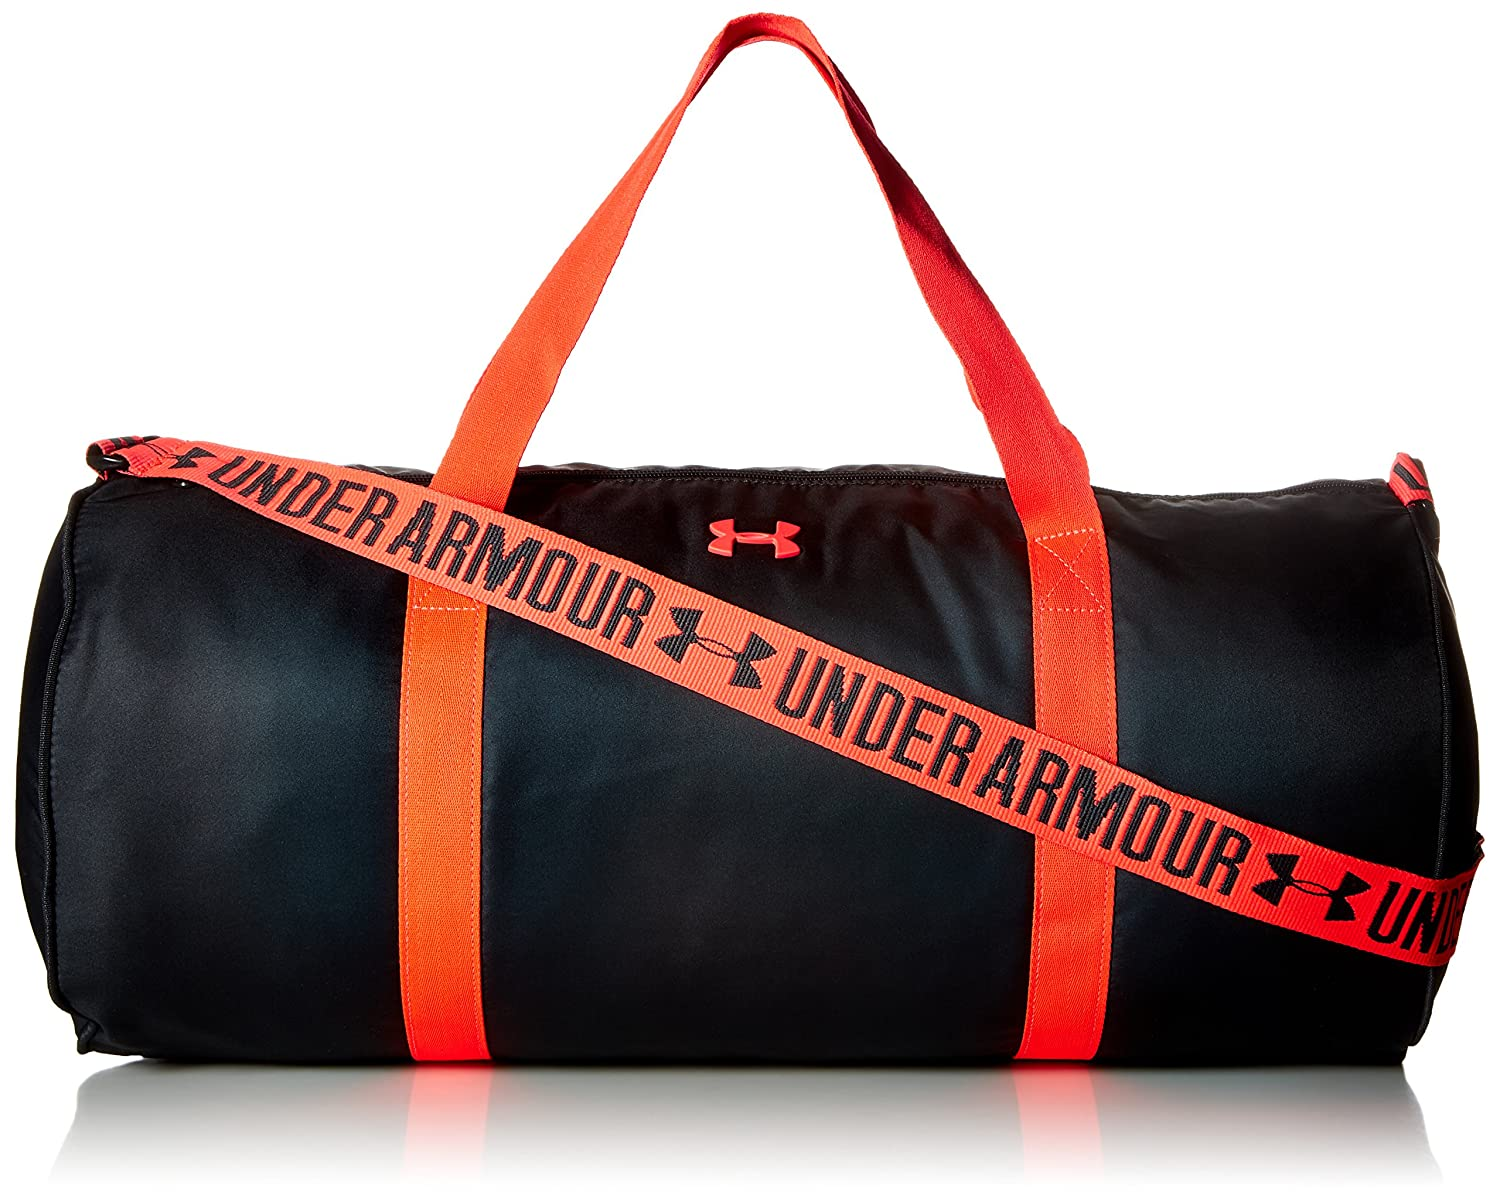 621f4b1fa5 Under Armour Anthracite Marathon Polyester Red Gym Bag (1294743)   Amazon.in  Bags